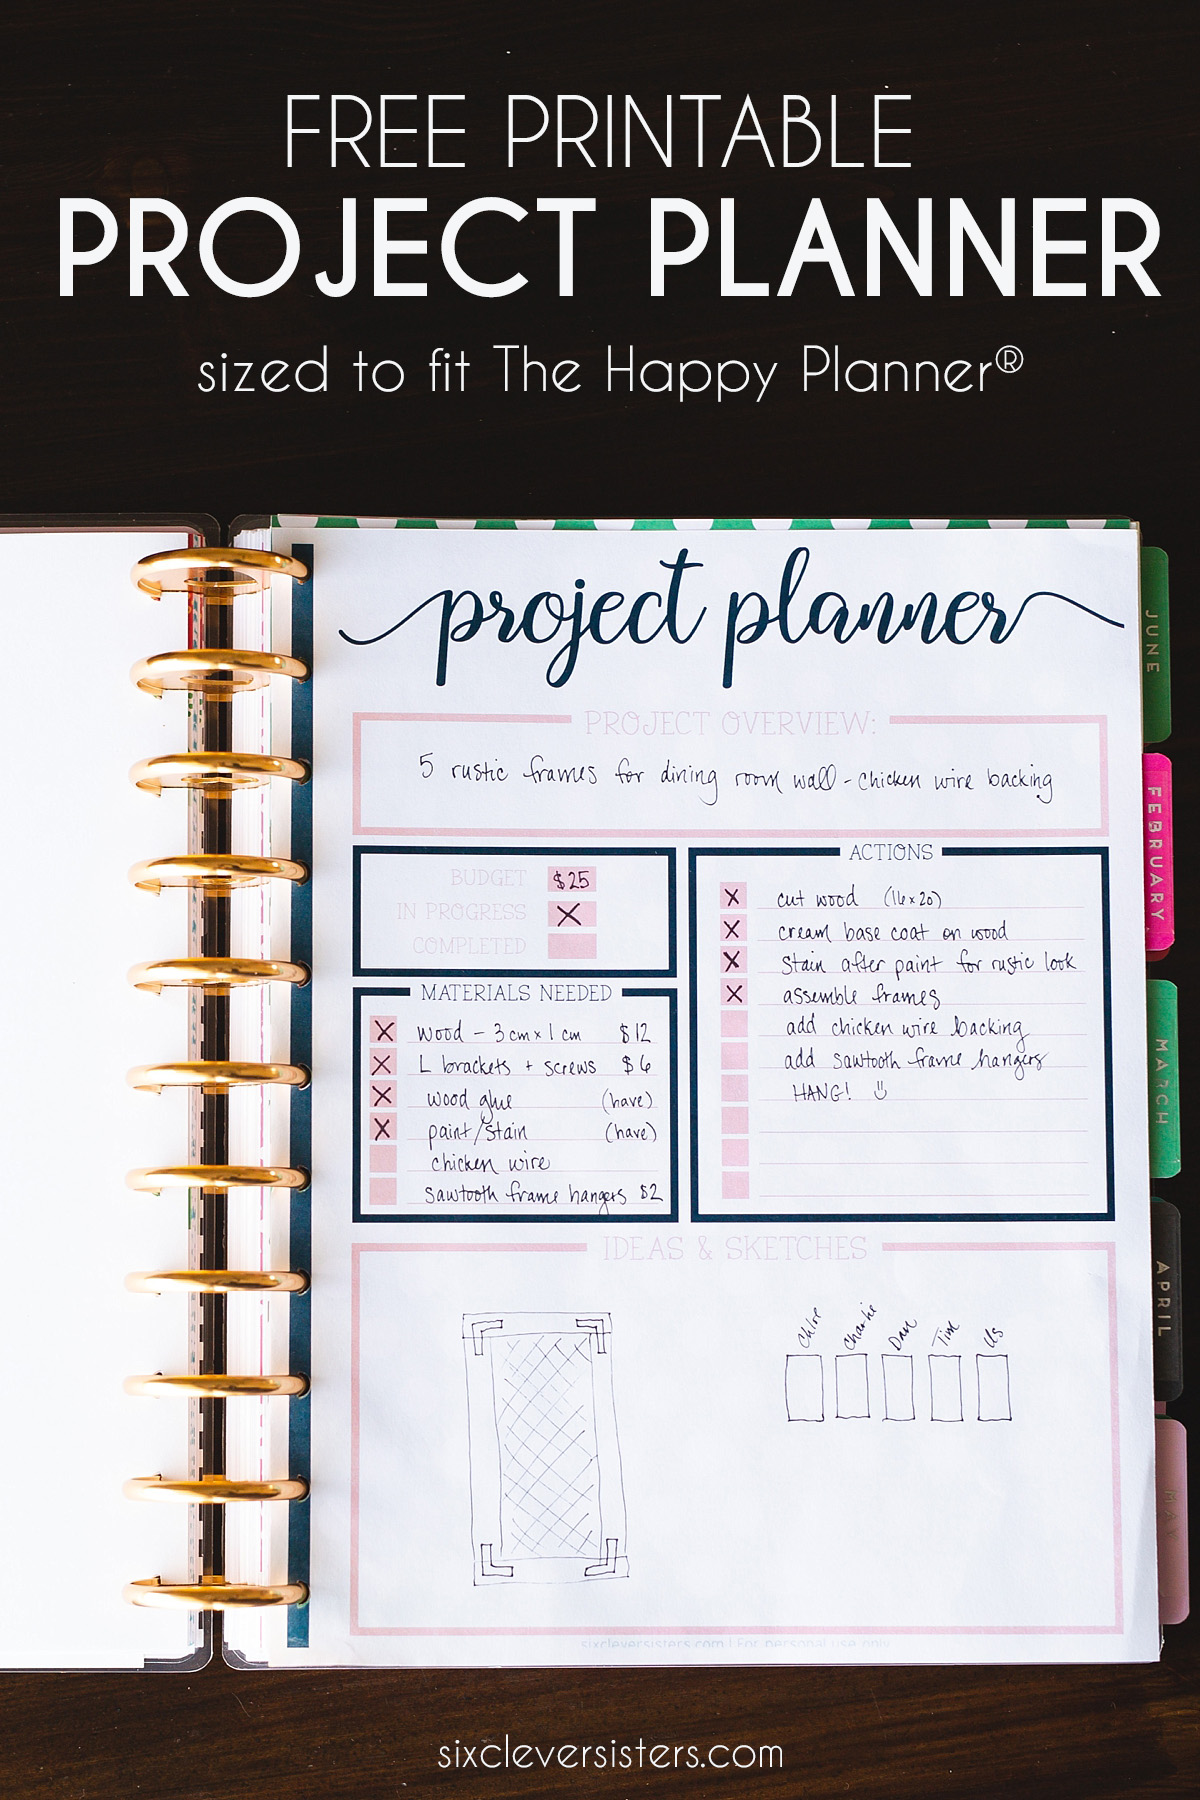 It's just a picture of Printable Project Planner with regard to home